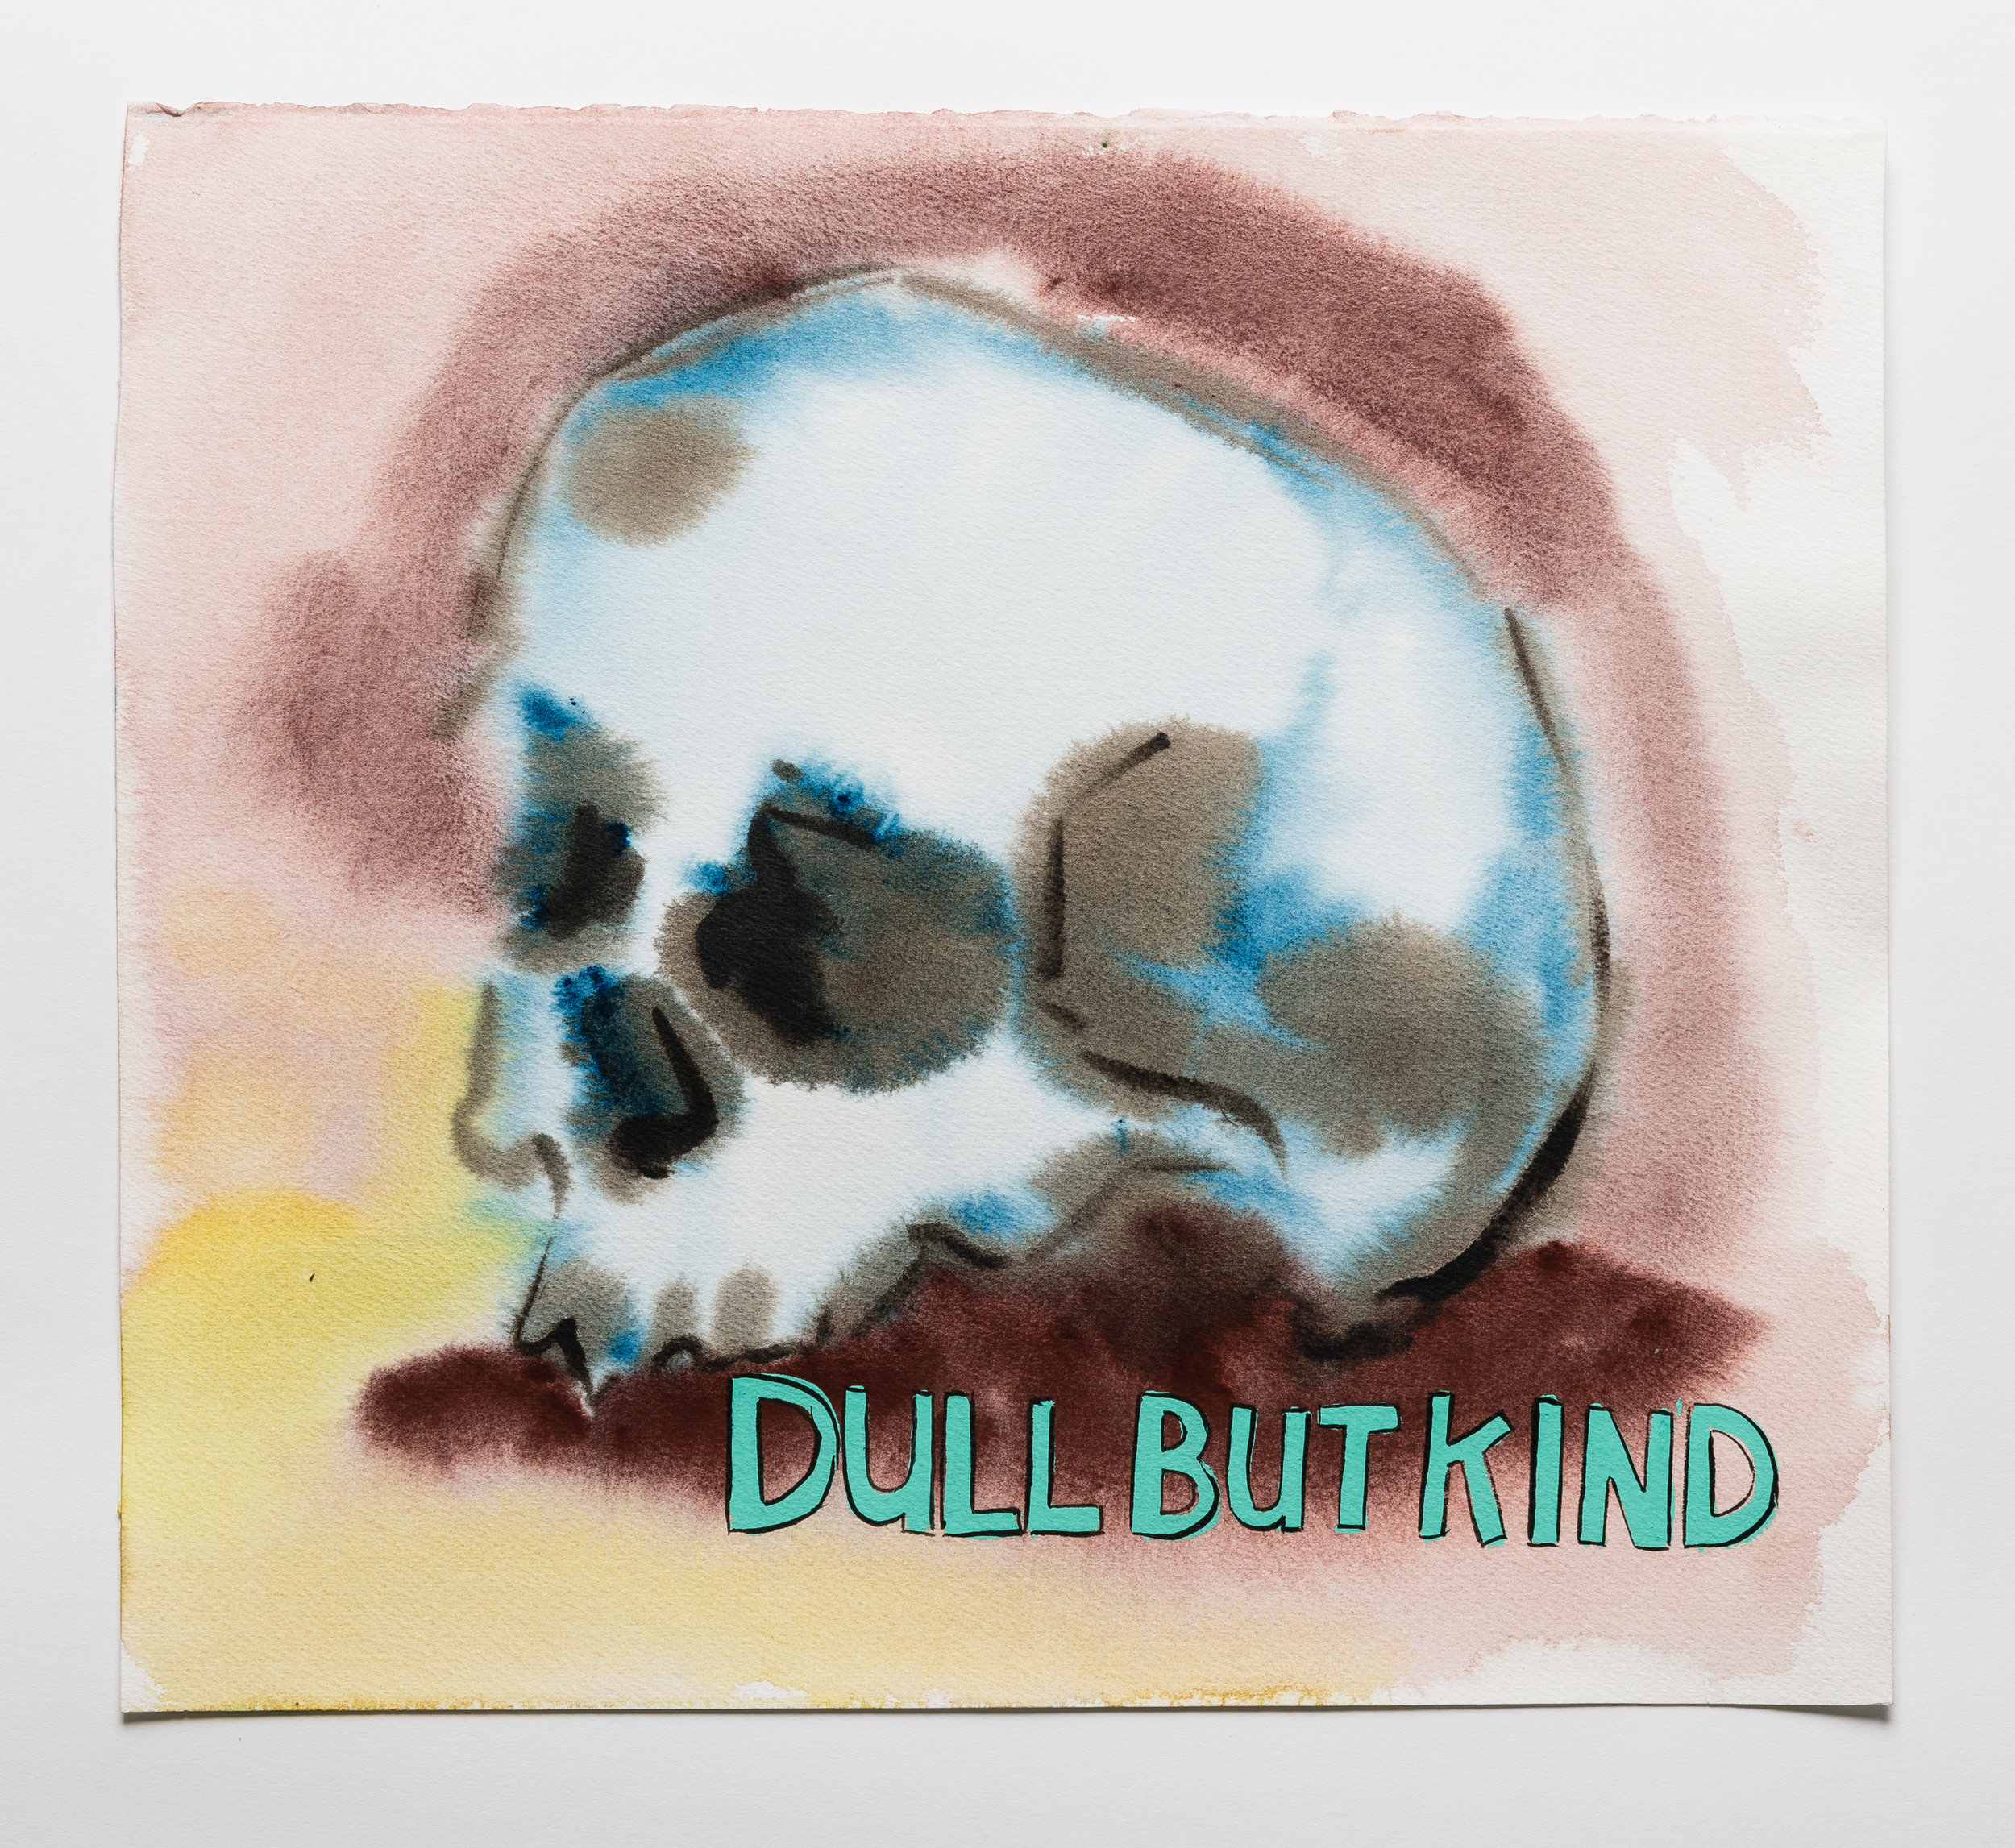 Dull But Kind  2015 watercolor, gouache and ink on paper